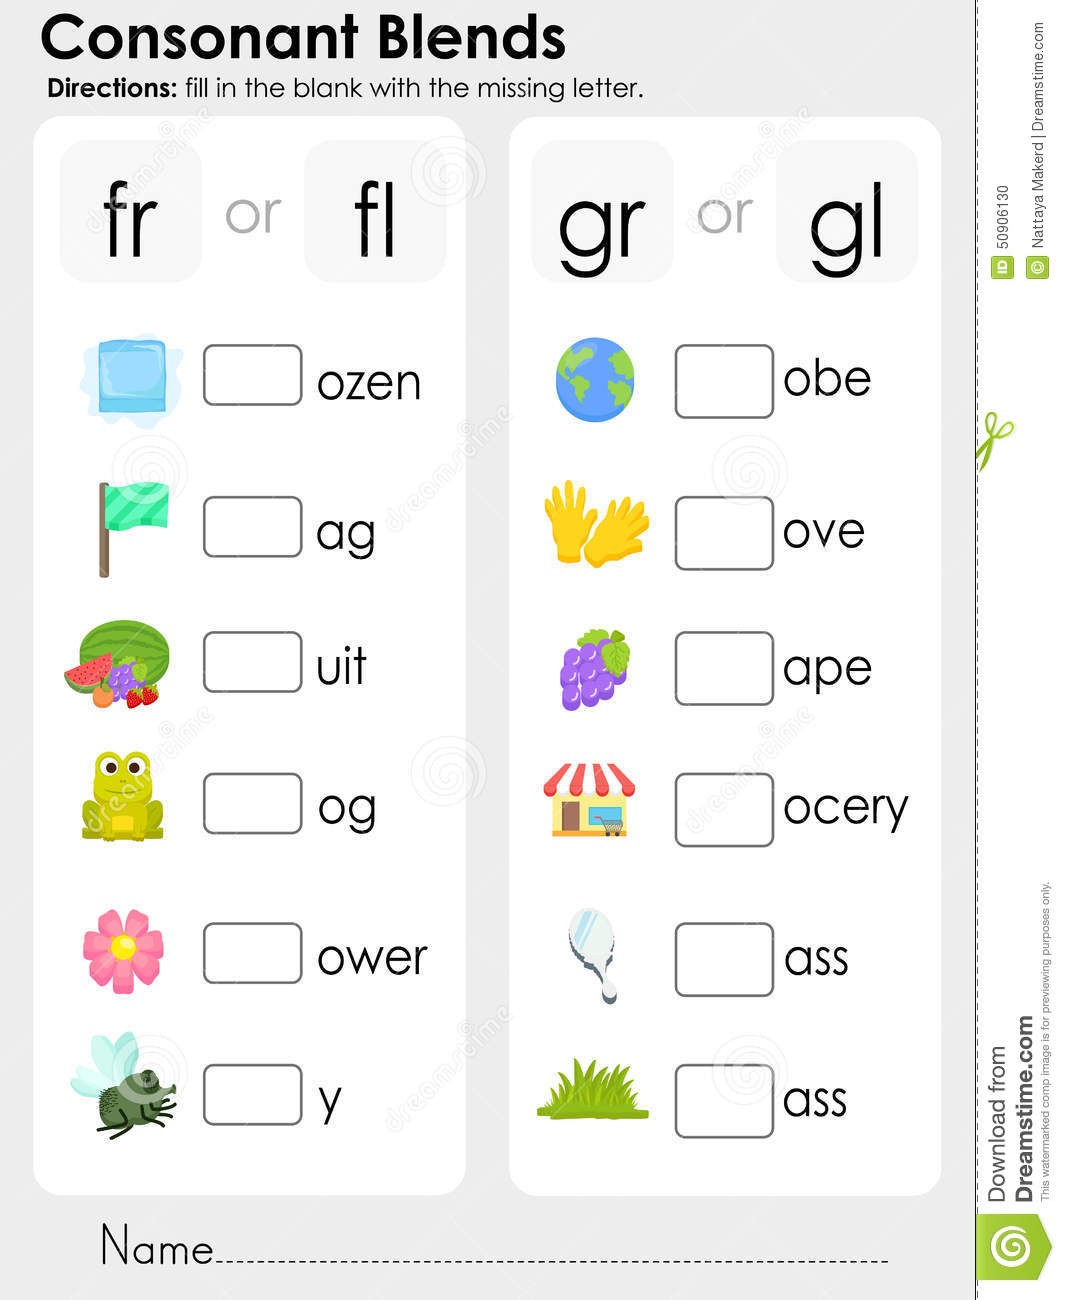 Consonant Blend Worksheets Free Worksheets Library | Download and ...